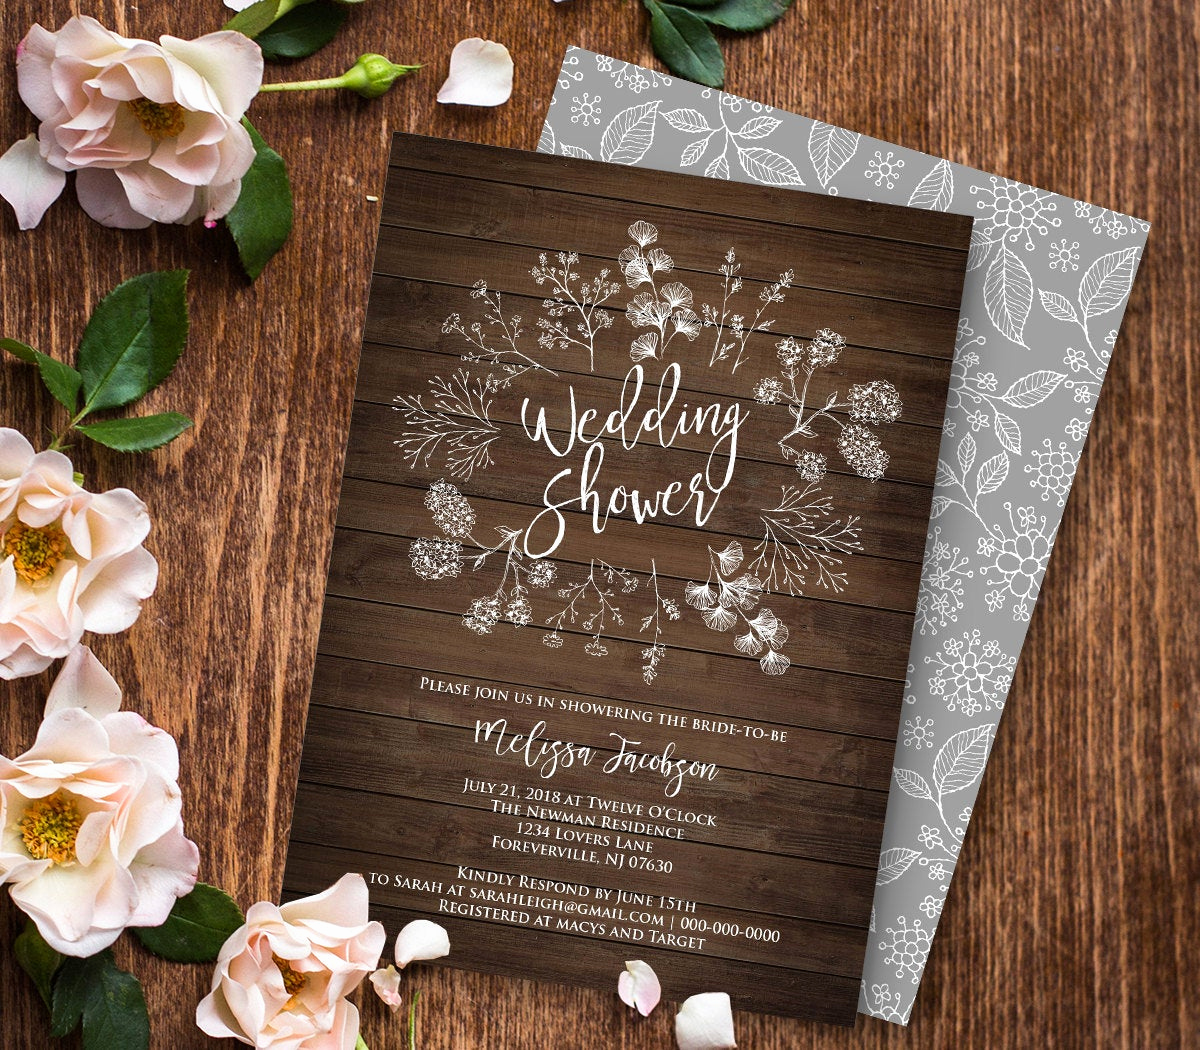 Diy Bridal Shower Invitation Templates Elegant Wedding Shower Invitation Template Couples Shower